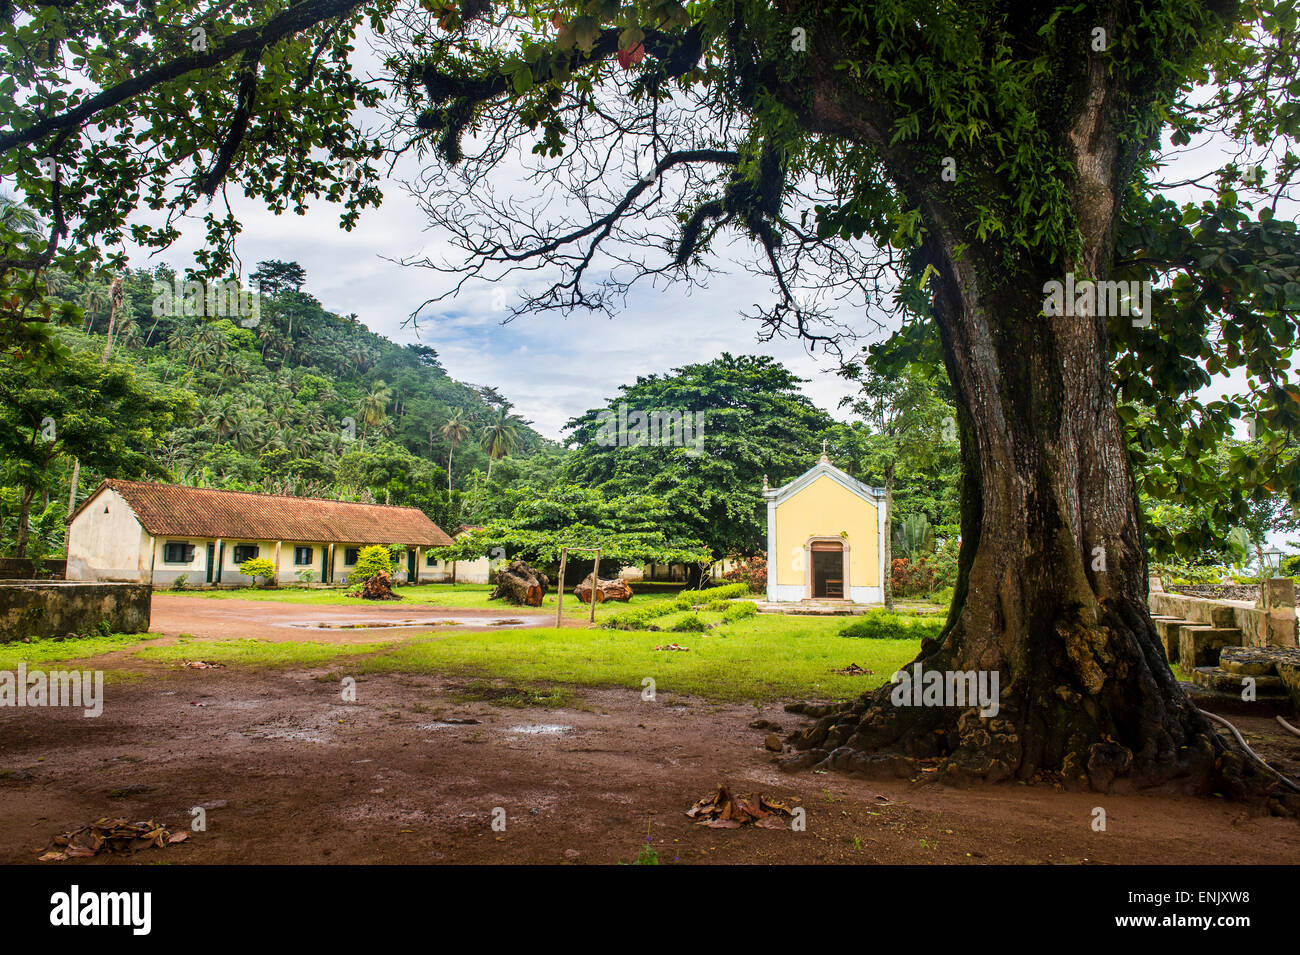 Old plantation Roca with a little chapel, Ilheu das Rolas, Sao Tome and Principe, Atlantic Ocean, Africa - Stock Image